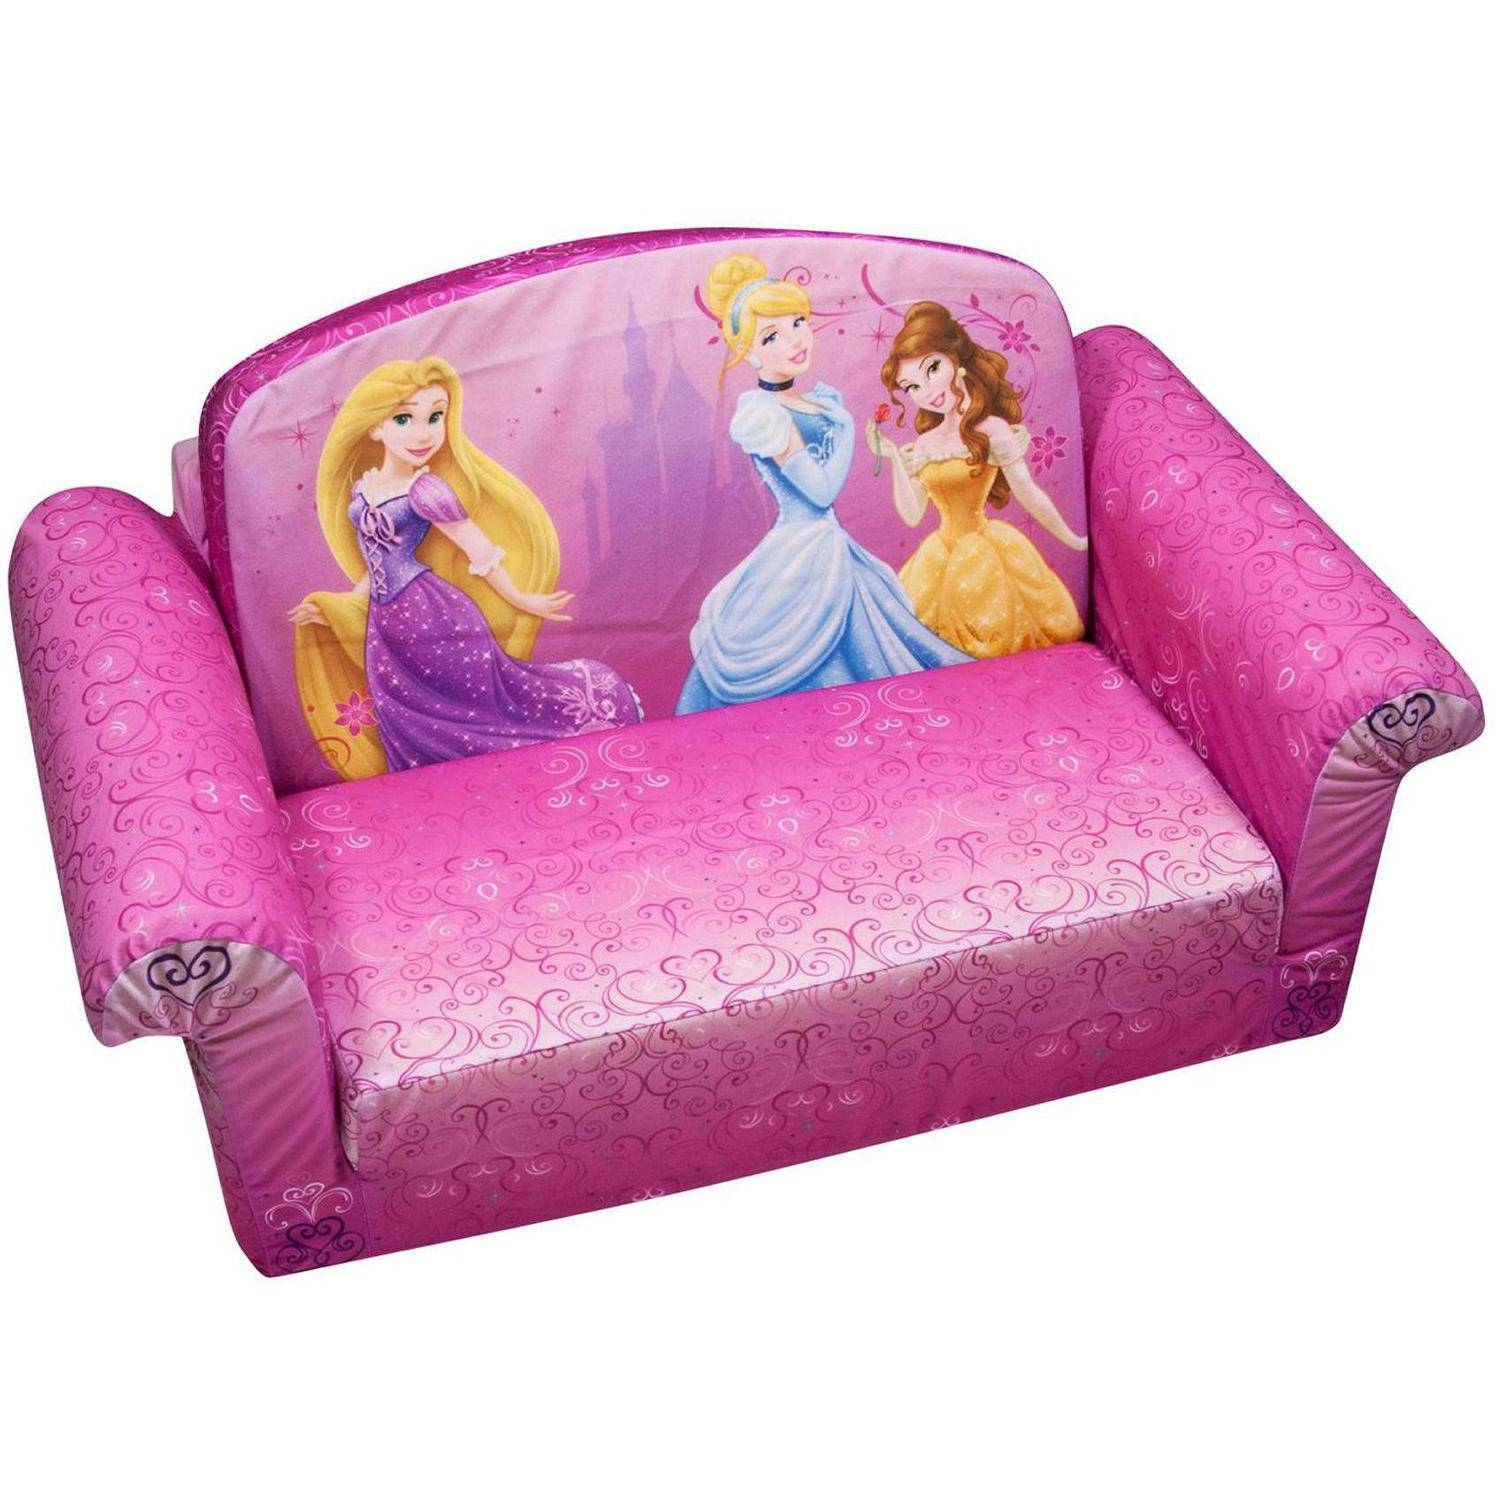 Marshmallow 2-In-1 Flip Open Sofa, Disney Princess - Walmart for Mickey Flip Sofas (Image 6 of 15)